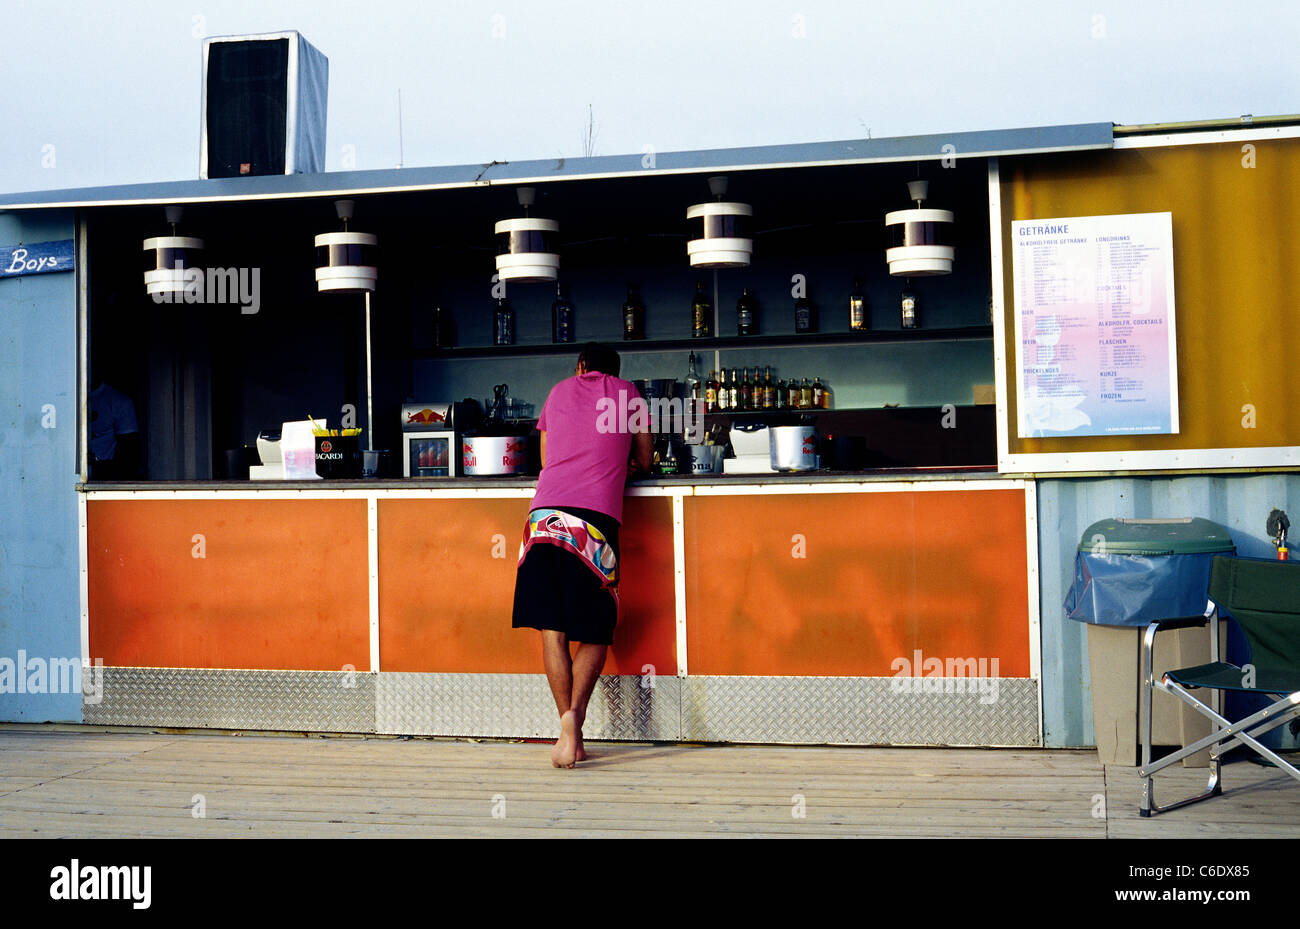 Punter waiting for the bartender to serve in King Kamehameha Beach Club at Hafeninsel in Offenbach in Germany. - Stock Image